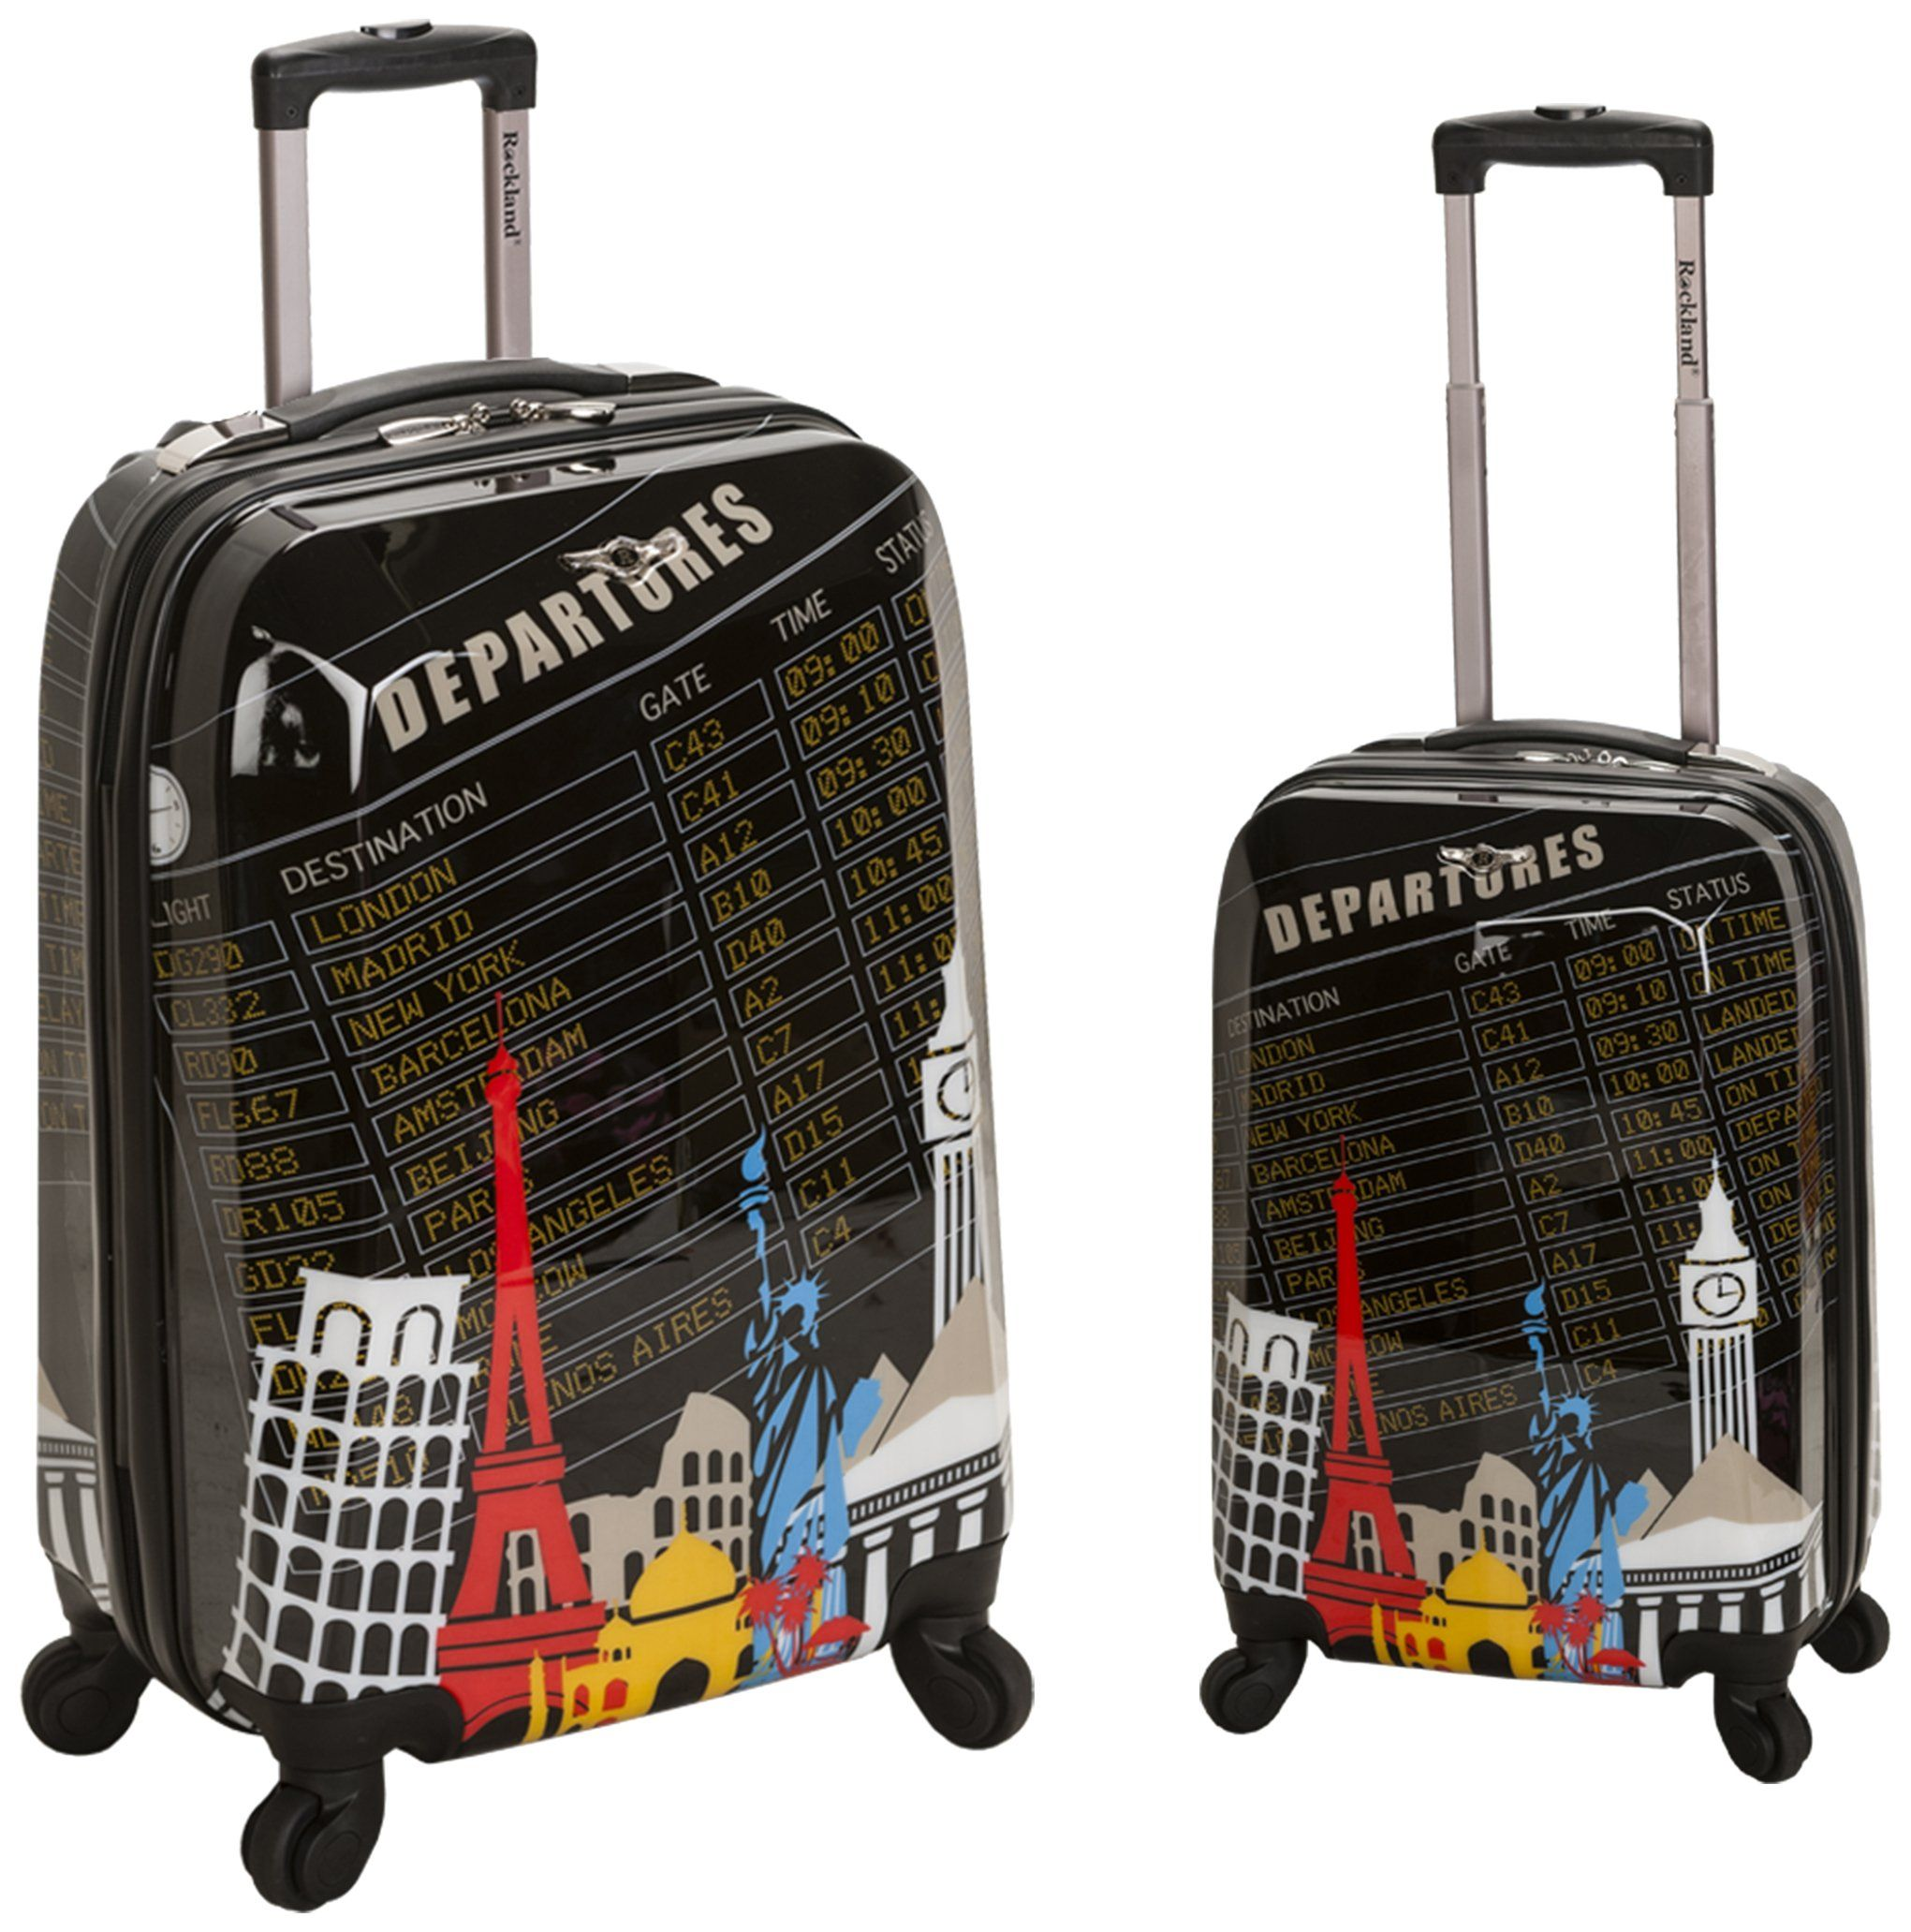 Rockland Luggage 2 Piece Upright Luggage Set, Departure, Medium ...